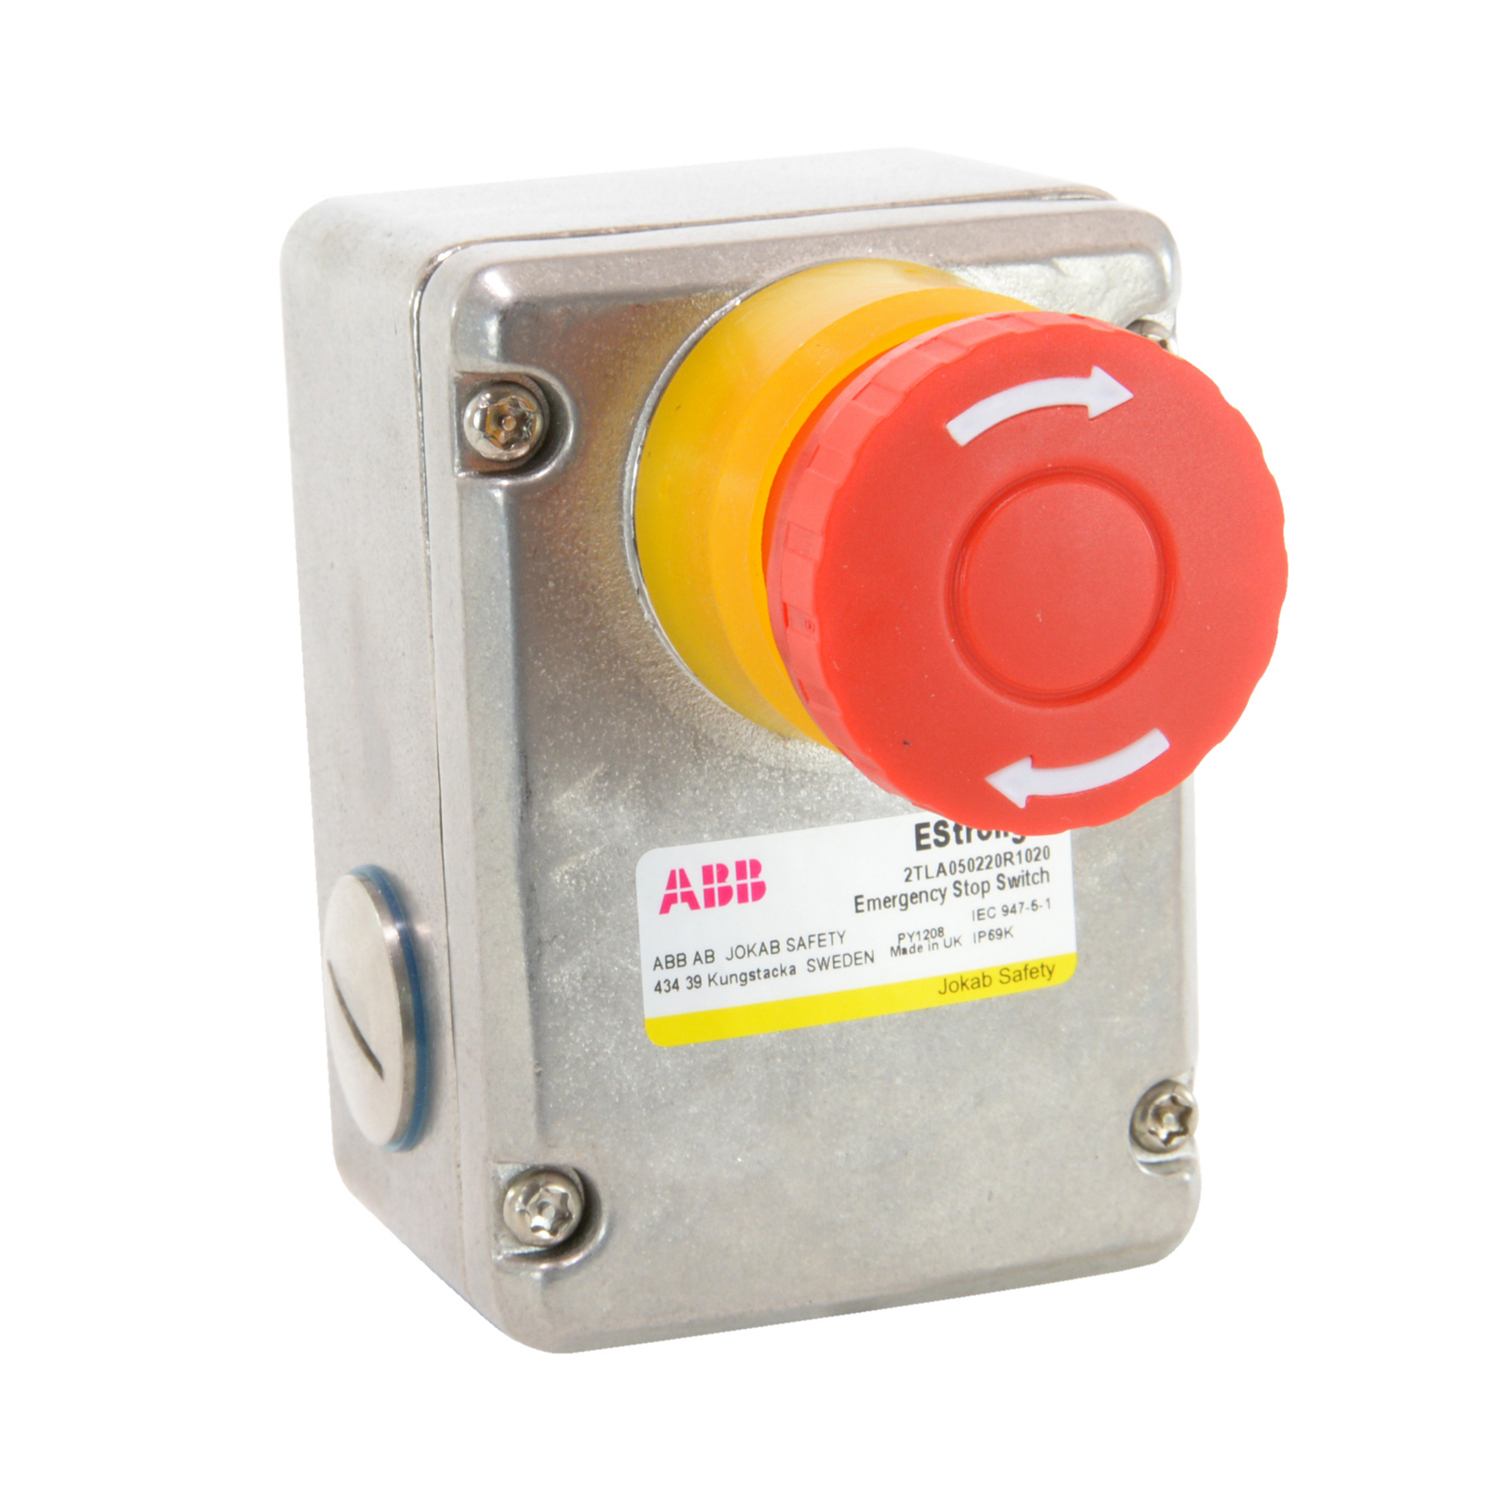 ABB 2TLA050220R1020 Emergency Stop Device